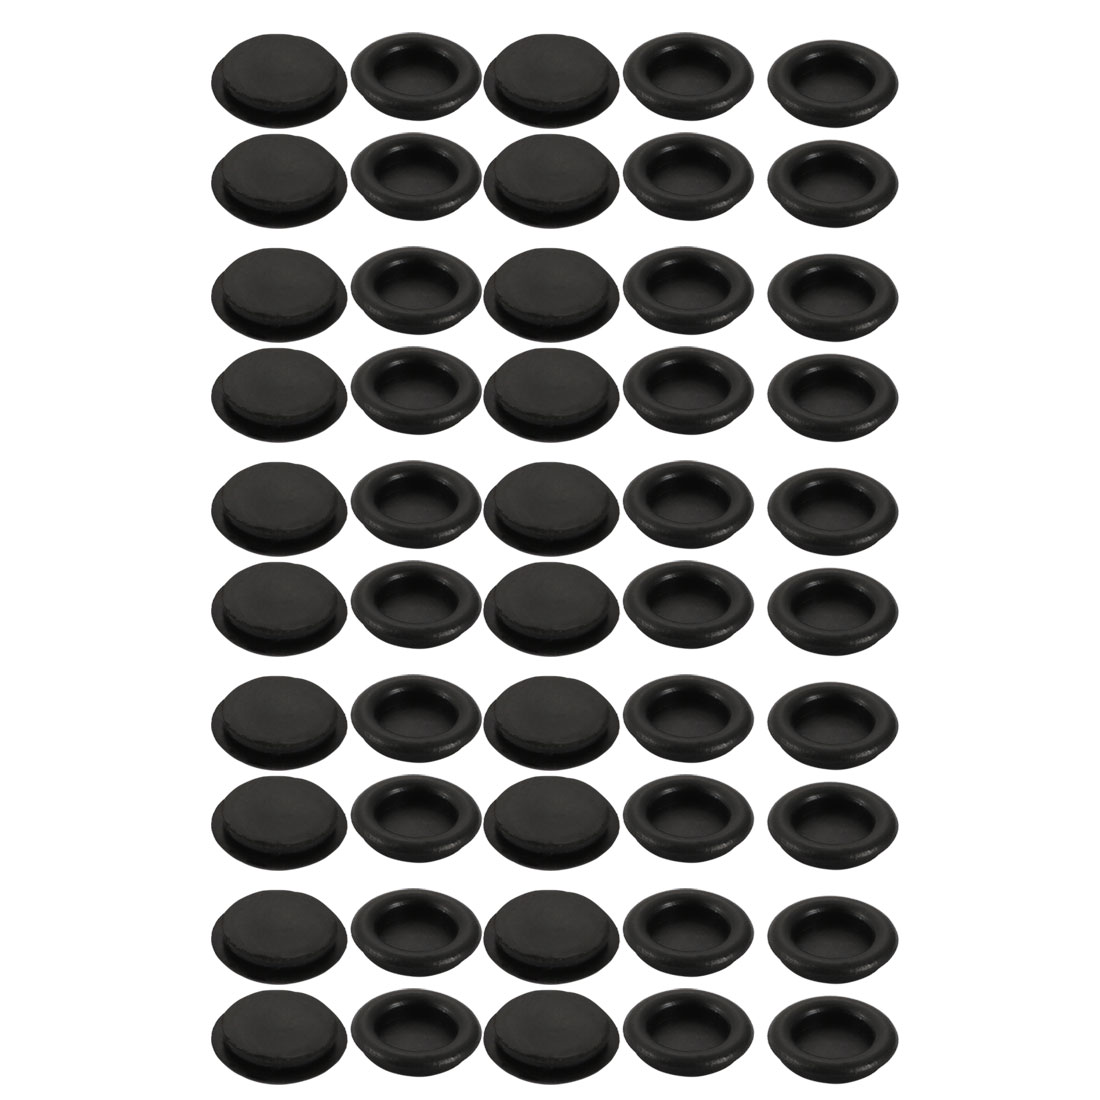 50pcs Wire Protective Grommets Black Rubber 18mm Dia Single Side Grommets